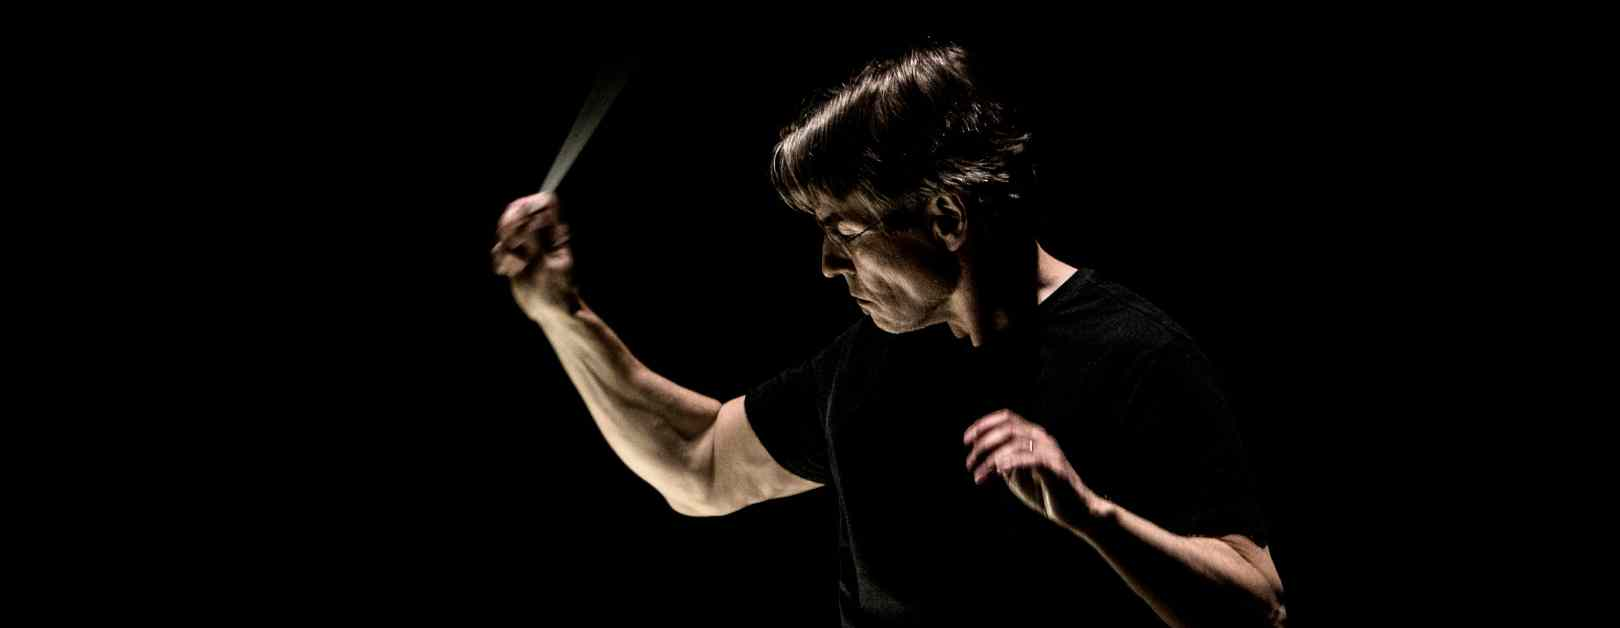 Salonen Conducts Beethoven's Eroica Symphony